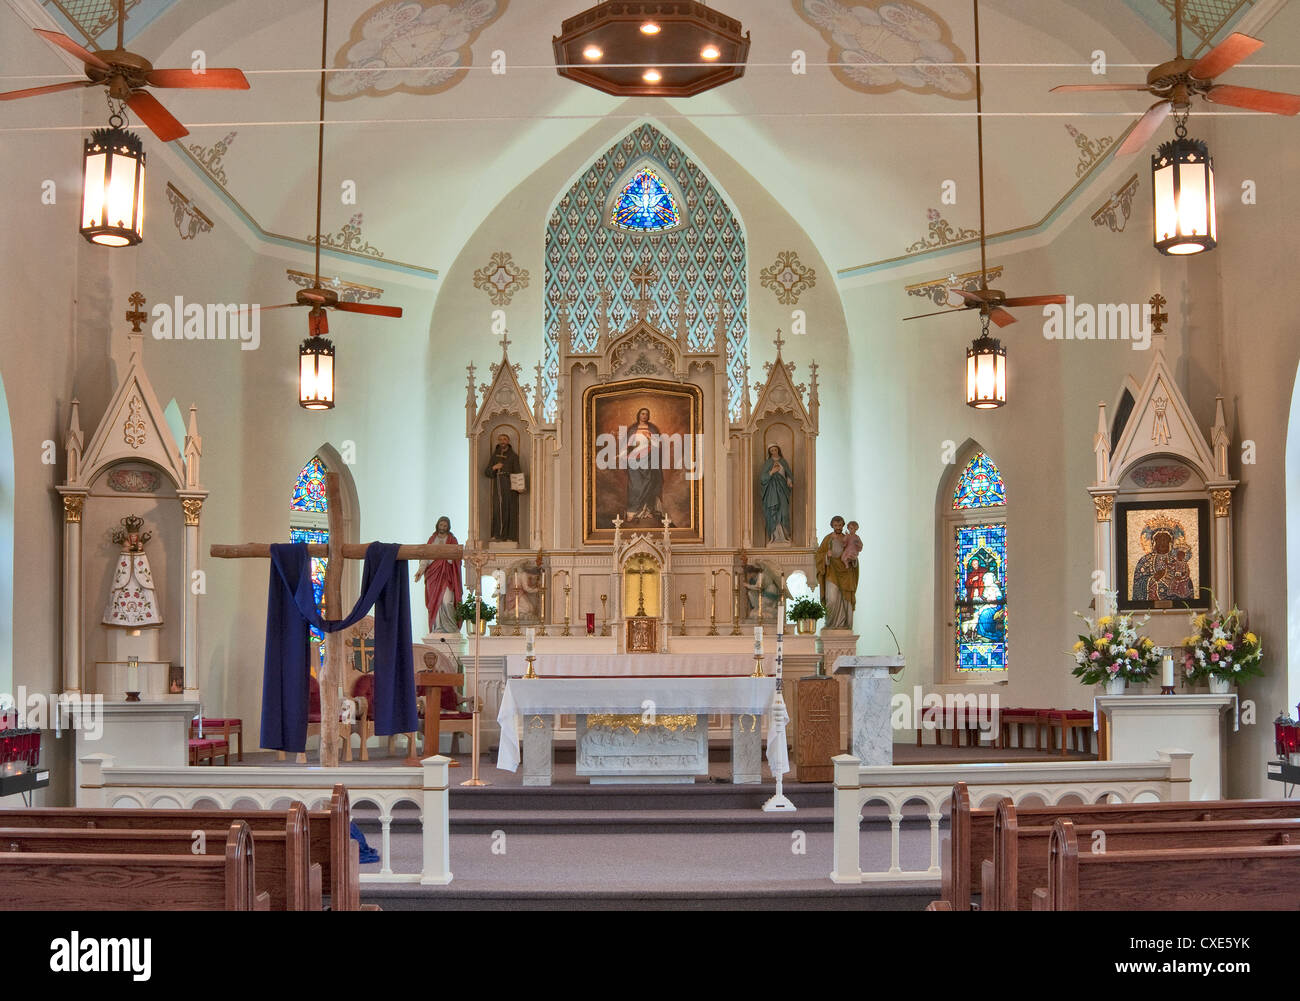 Altar at Immaculate Conception Catholic Church in Panna